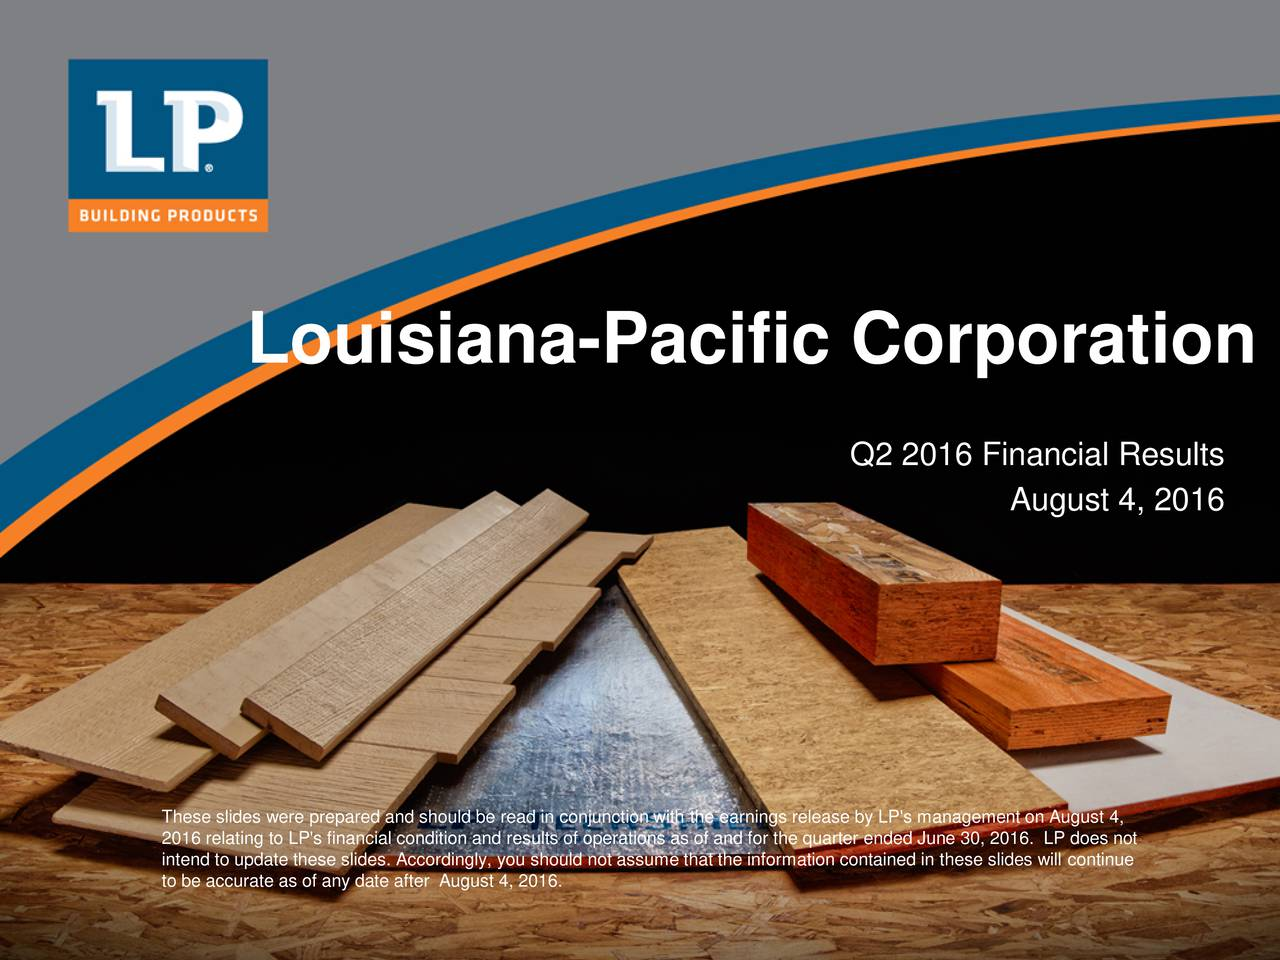 Q2 2016 Financial Results August 4, 2016 These slides were prepared and should be read in conjunction with the earnings release by LP's management on August4, 2016 relating to LP's financial condition and results of operations as of and for the quarter ended June30, 2016. LP does not to be accurate as of any date after August4, 2016.ould not assume that the information contained in these slides will continue